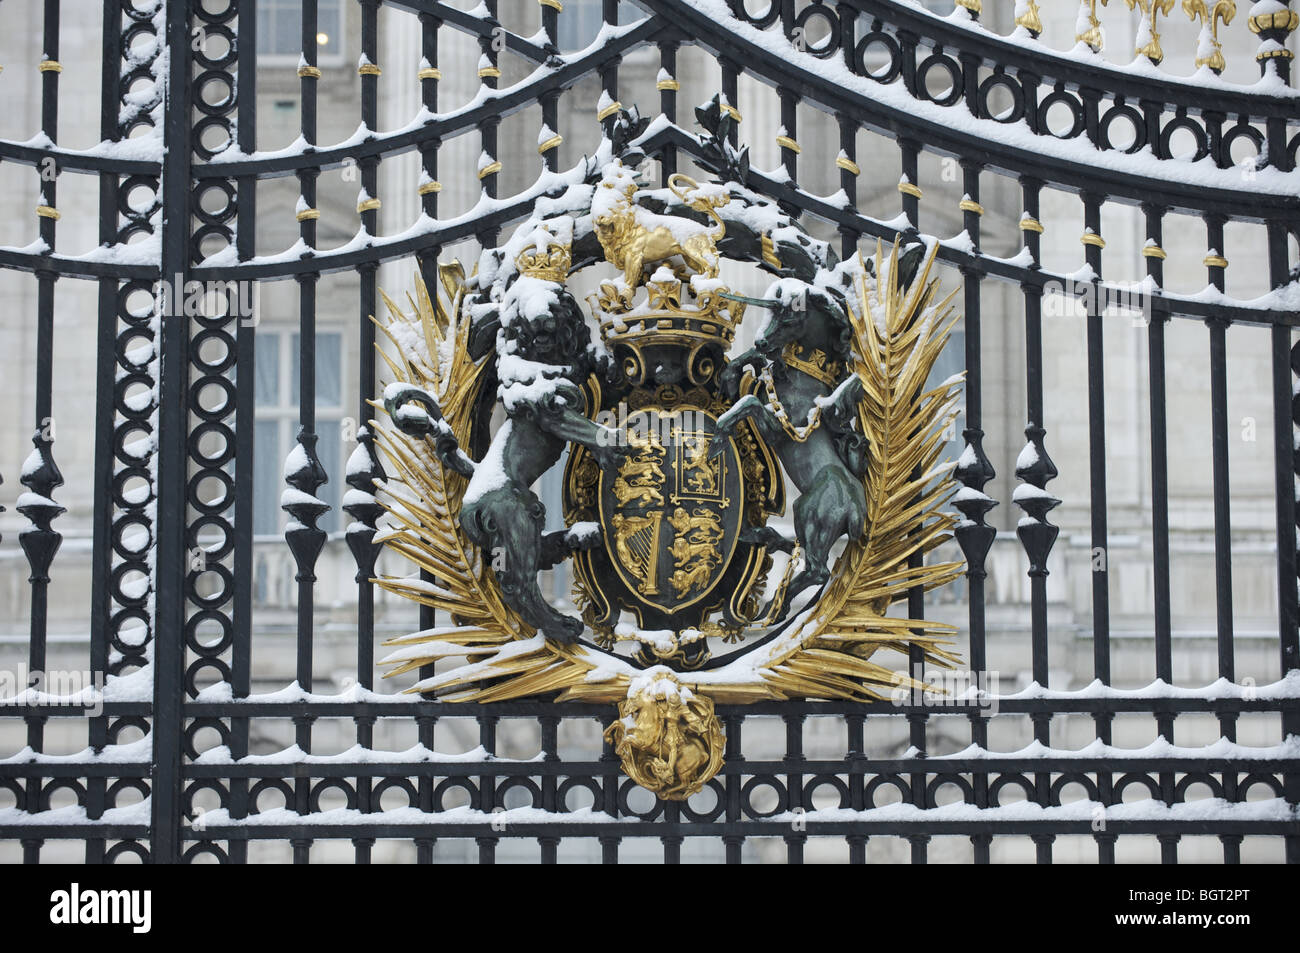 The royal coat of arms on Buckingham Palace gates in the snow - Stock Image